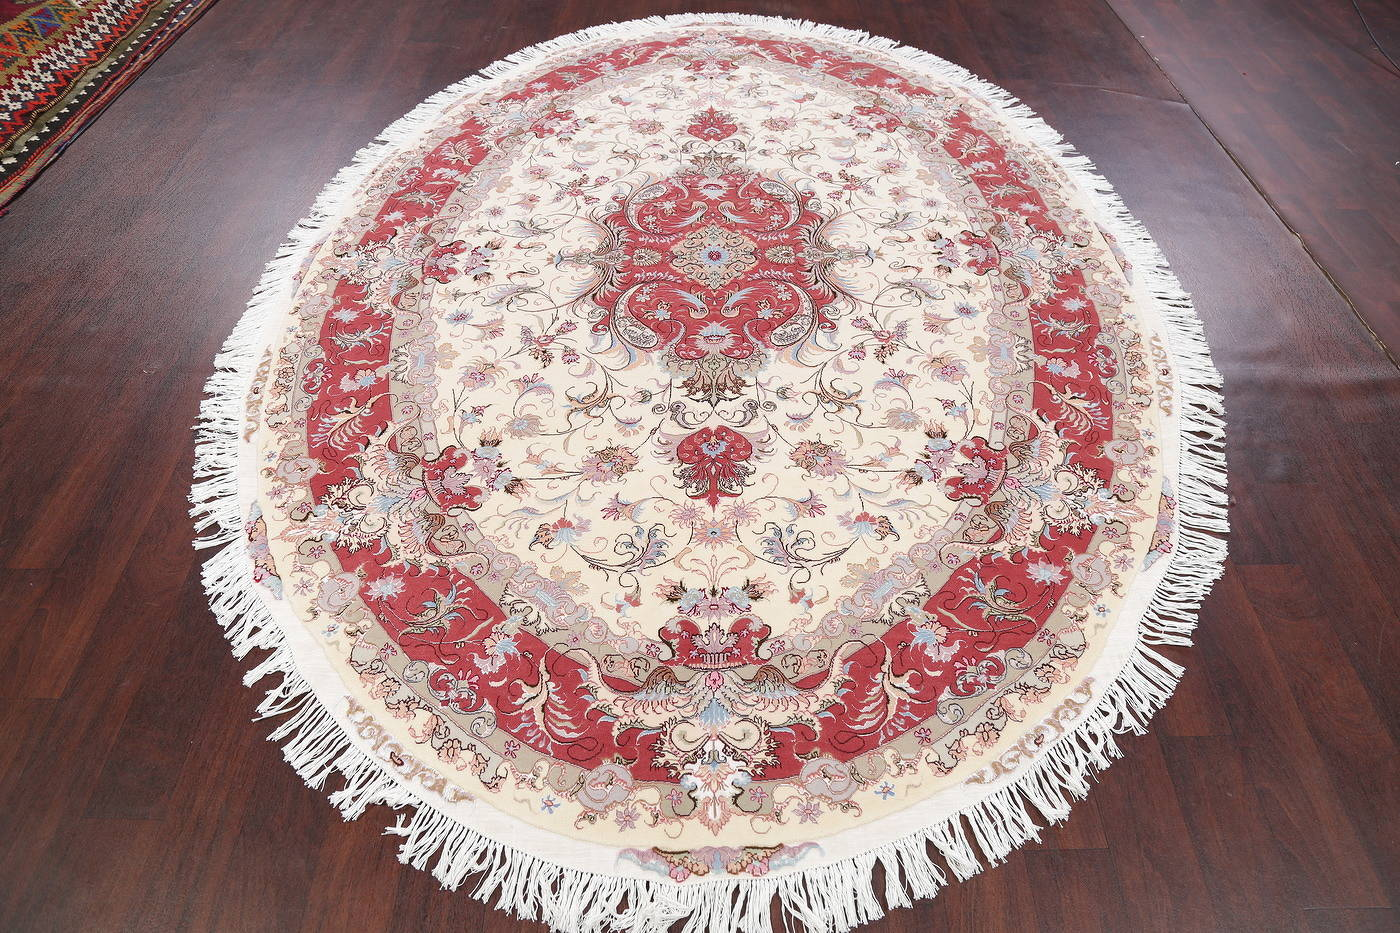 Ivory Floral Tabriz Persian Oval Area Rug 7x10 image 15